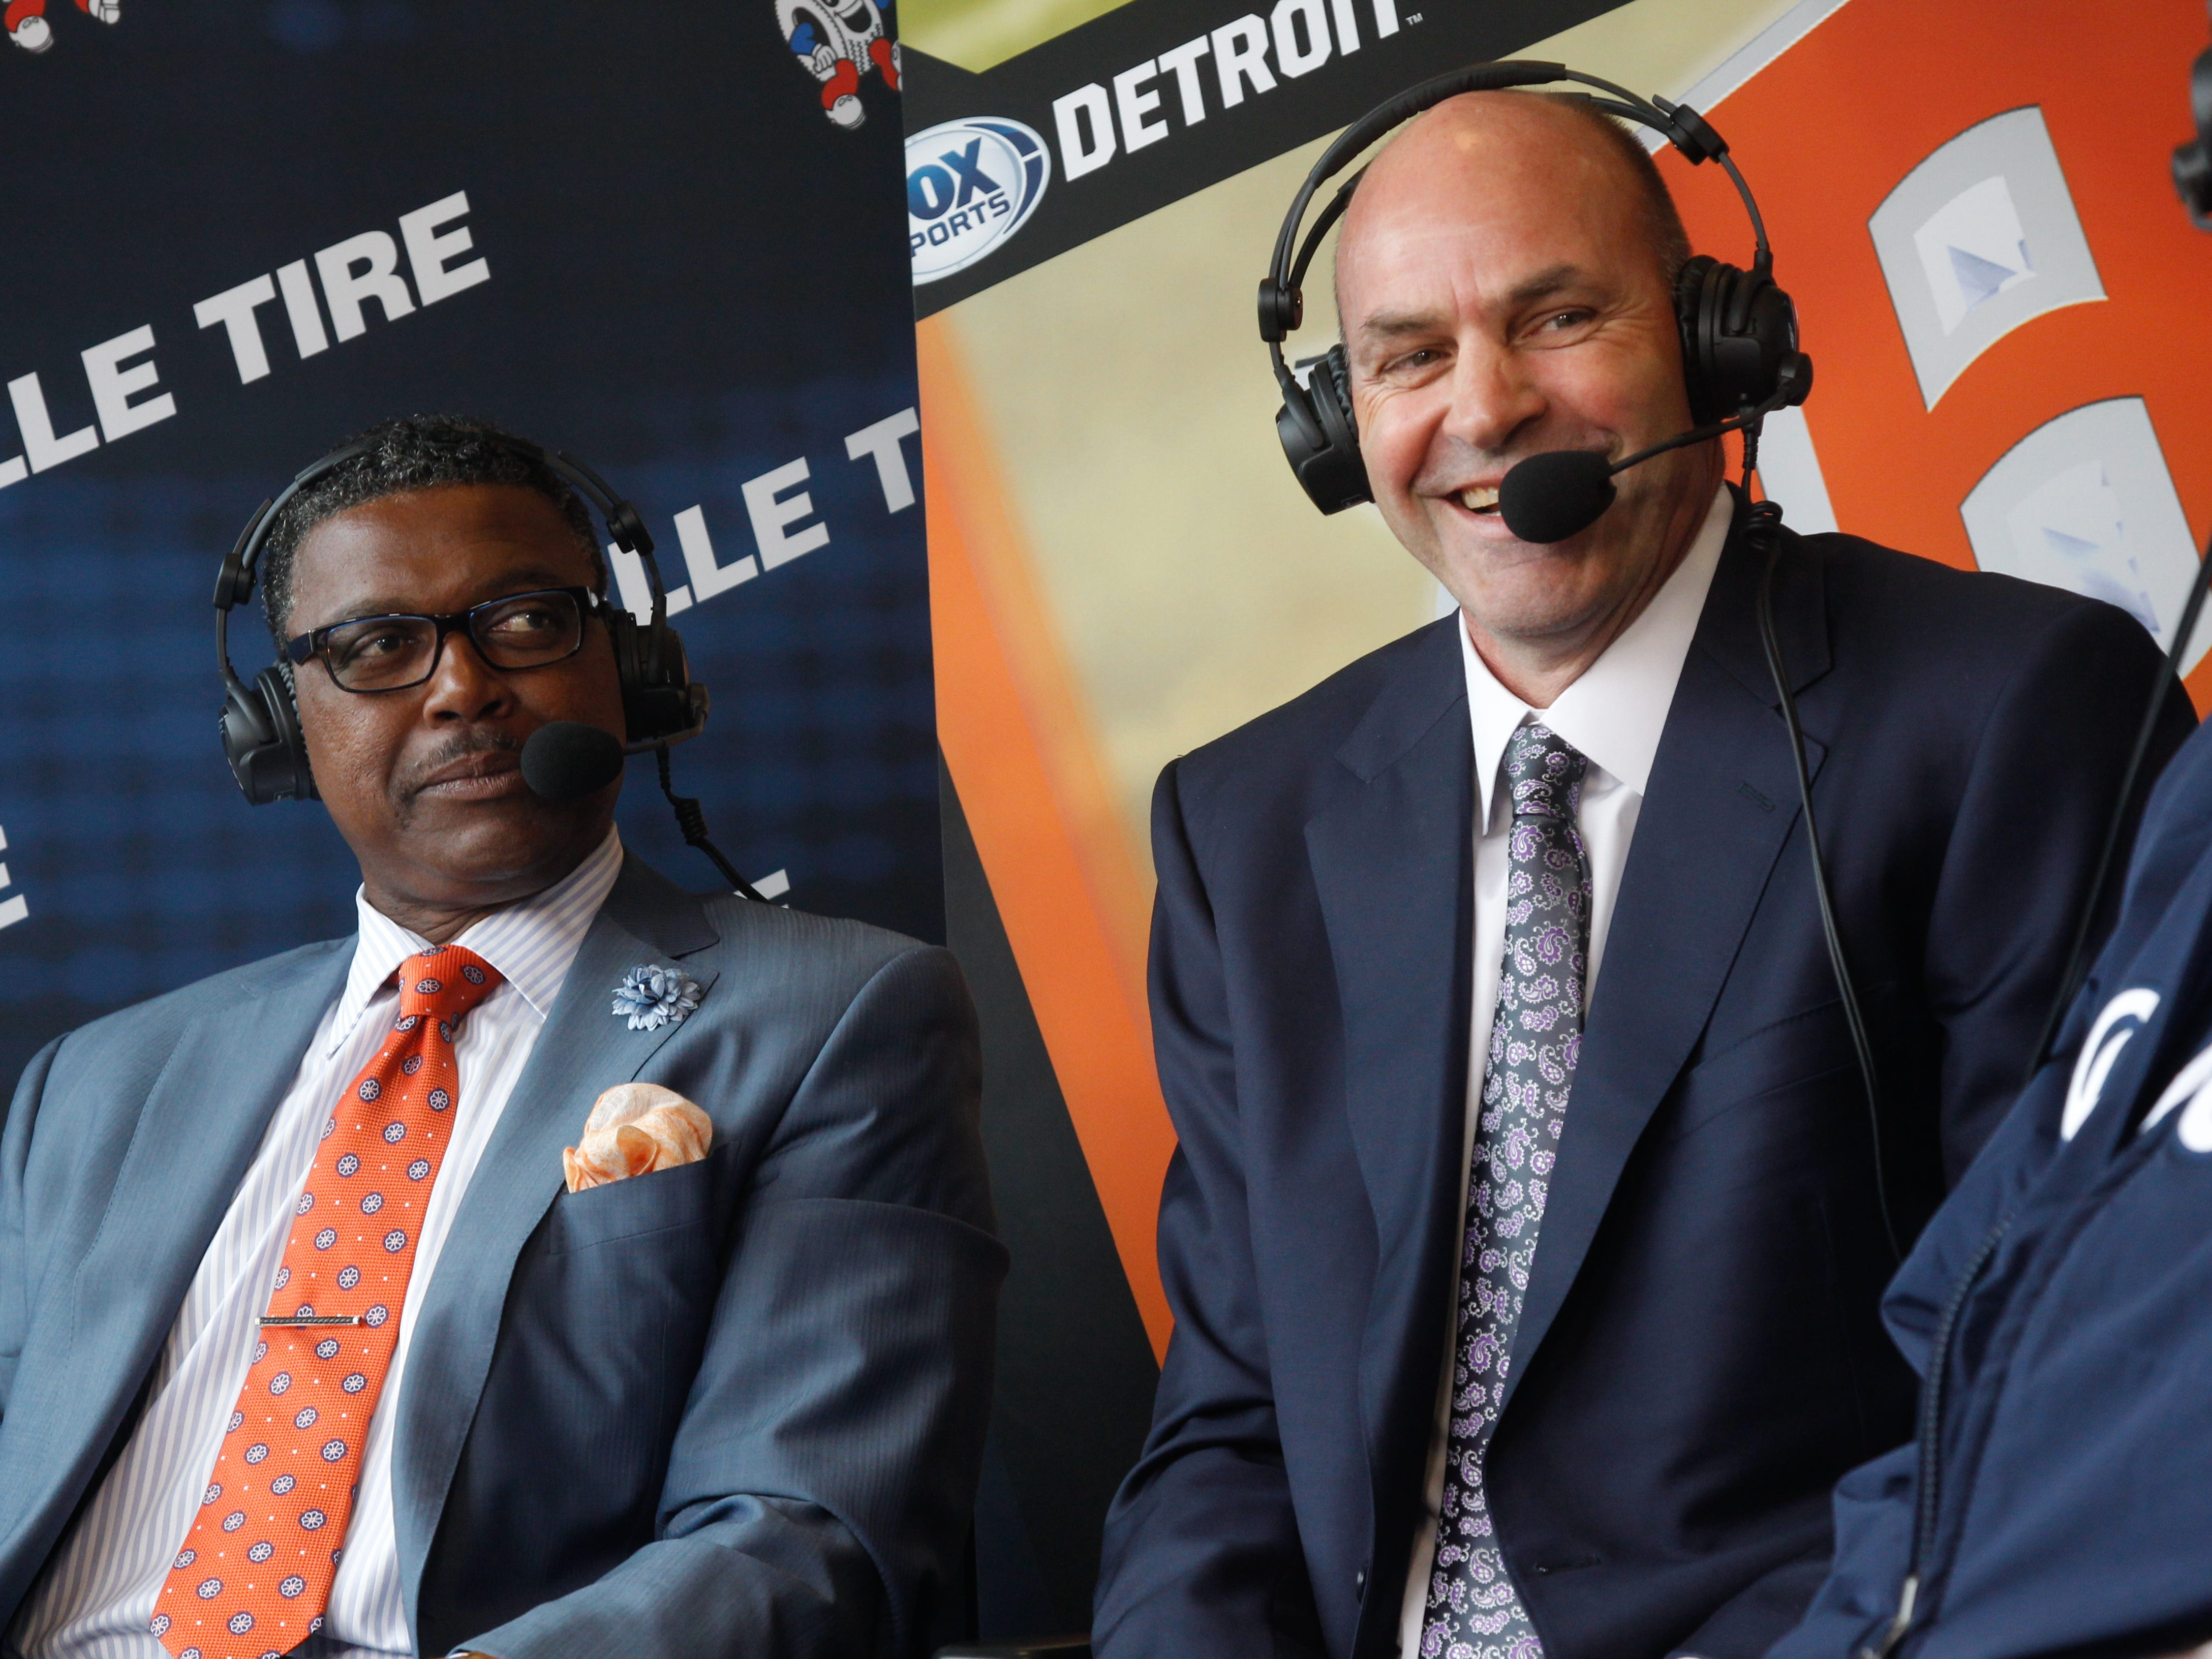 In 2015, Fox Sports Detroit decided to bring in extra analyst, including Kirk Gibson and Jack Morris, while Rod Allen still did most of the games with Mario Impemba. Gibson continues to do analyst work, while Morris did just two years, 2015-16.